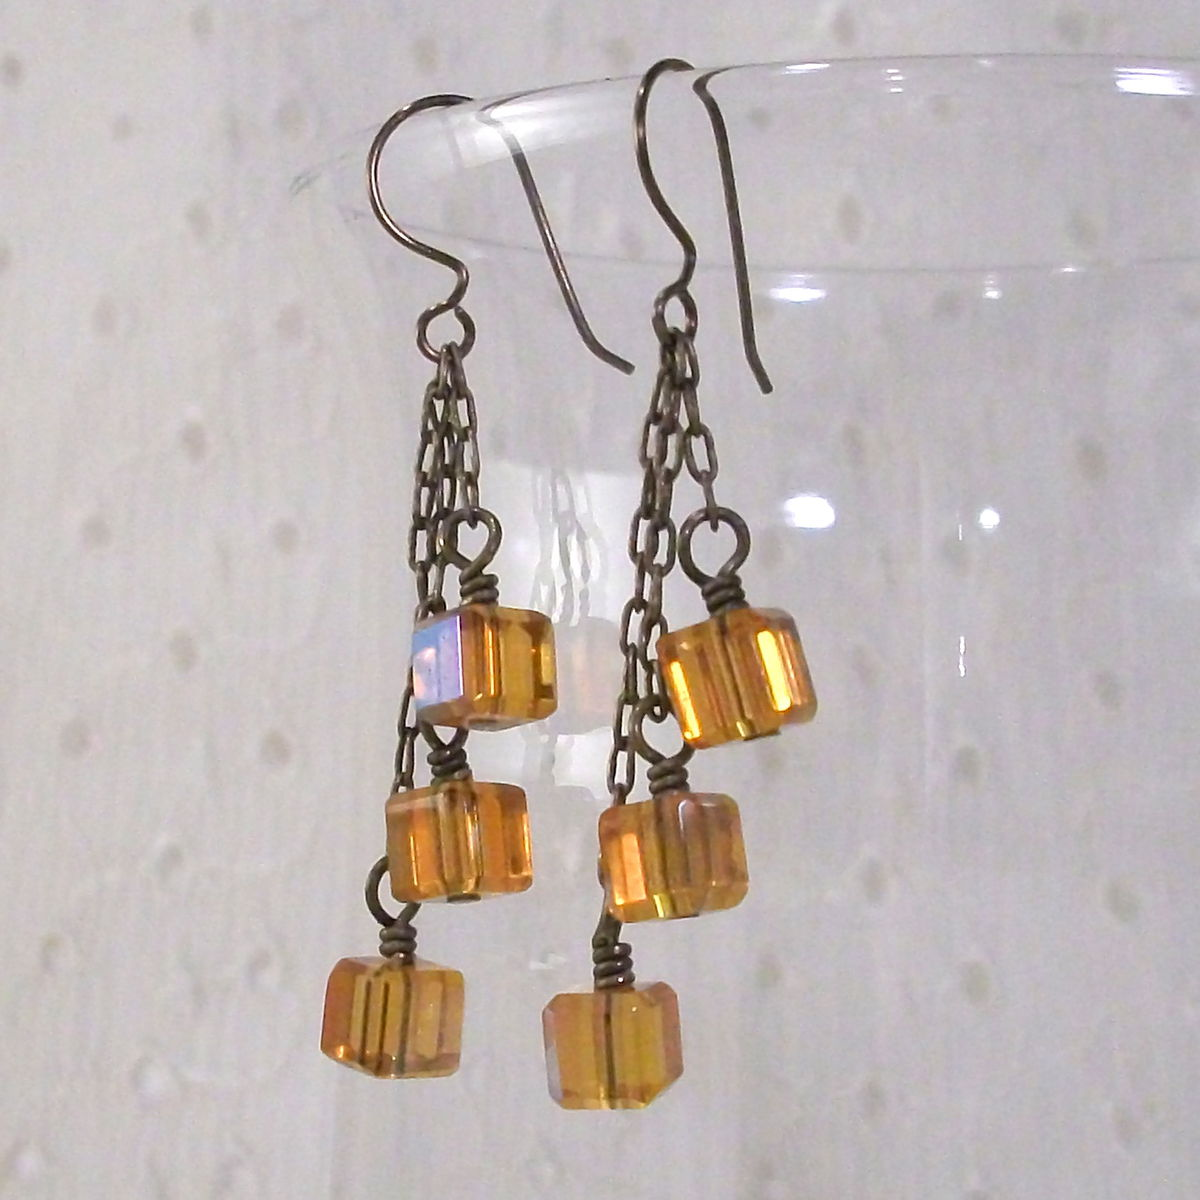 Golden Yellow Glass Cluster Earrings with Niobium Earwires - product image